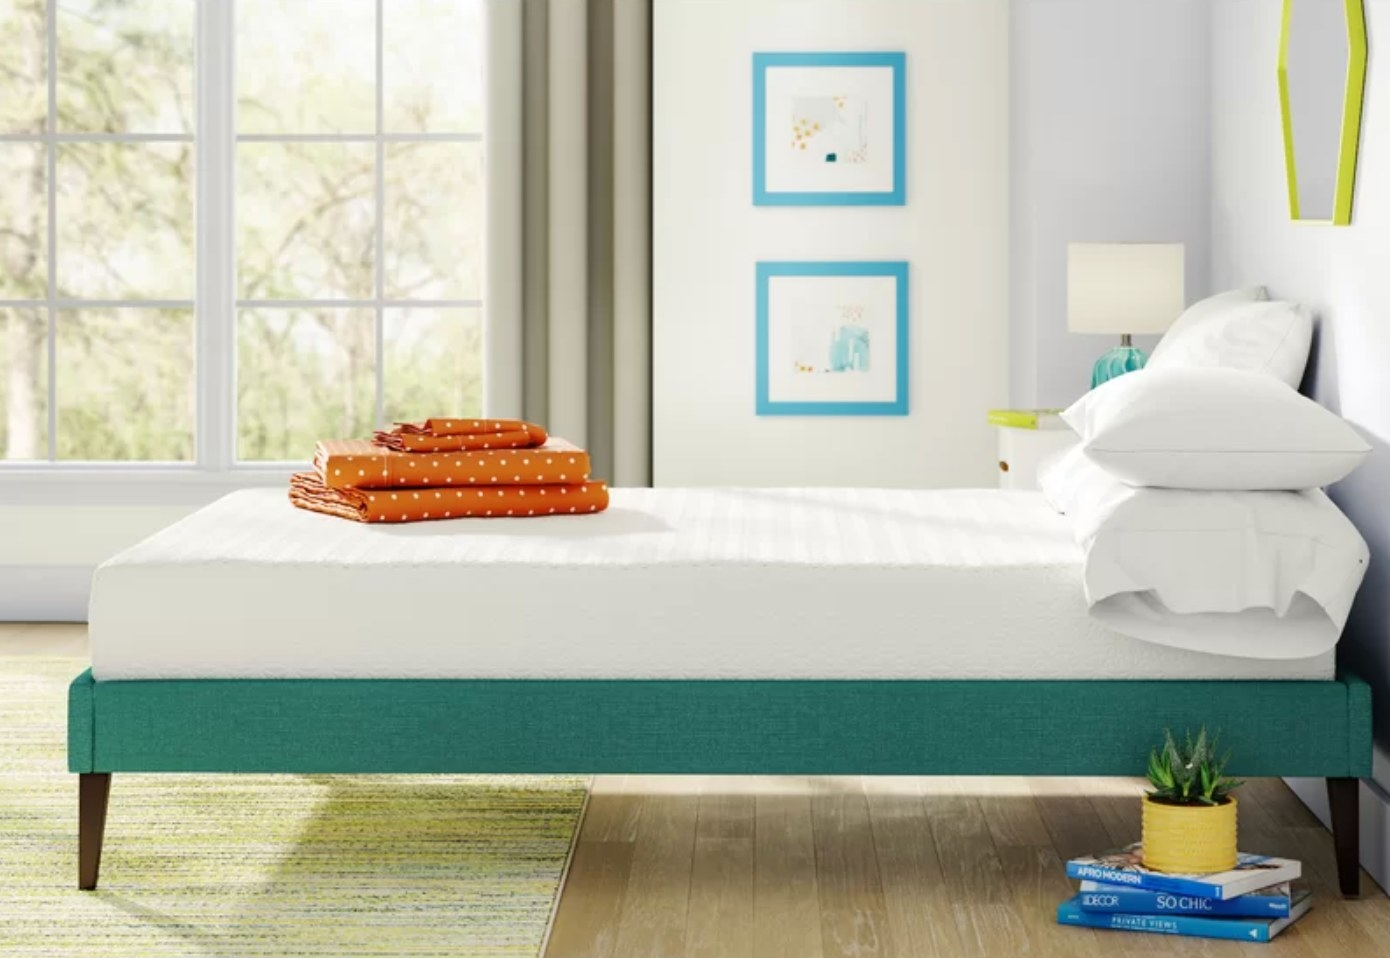 The two-sided memory foam mattress on a bed with linens folded on top